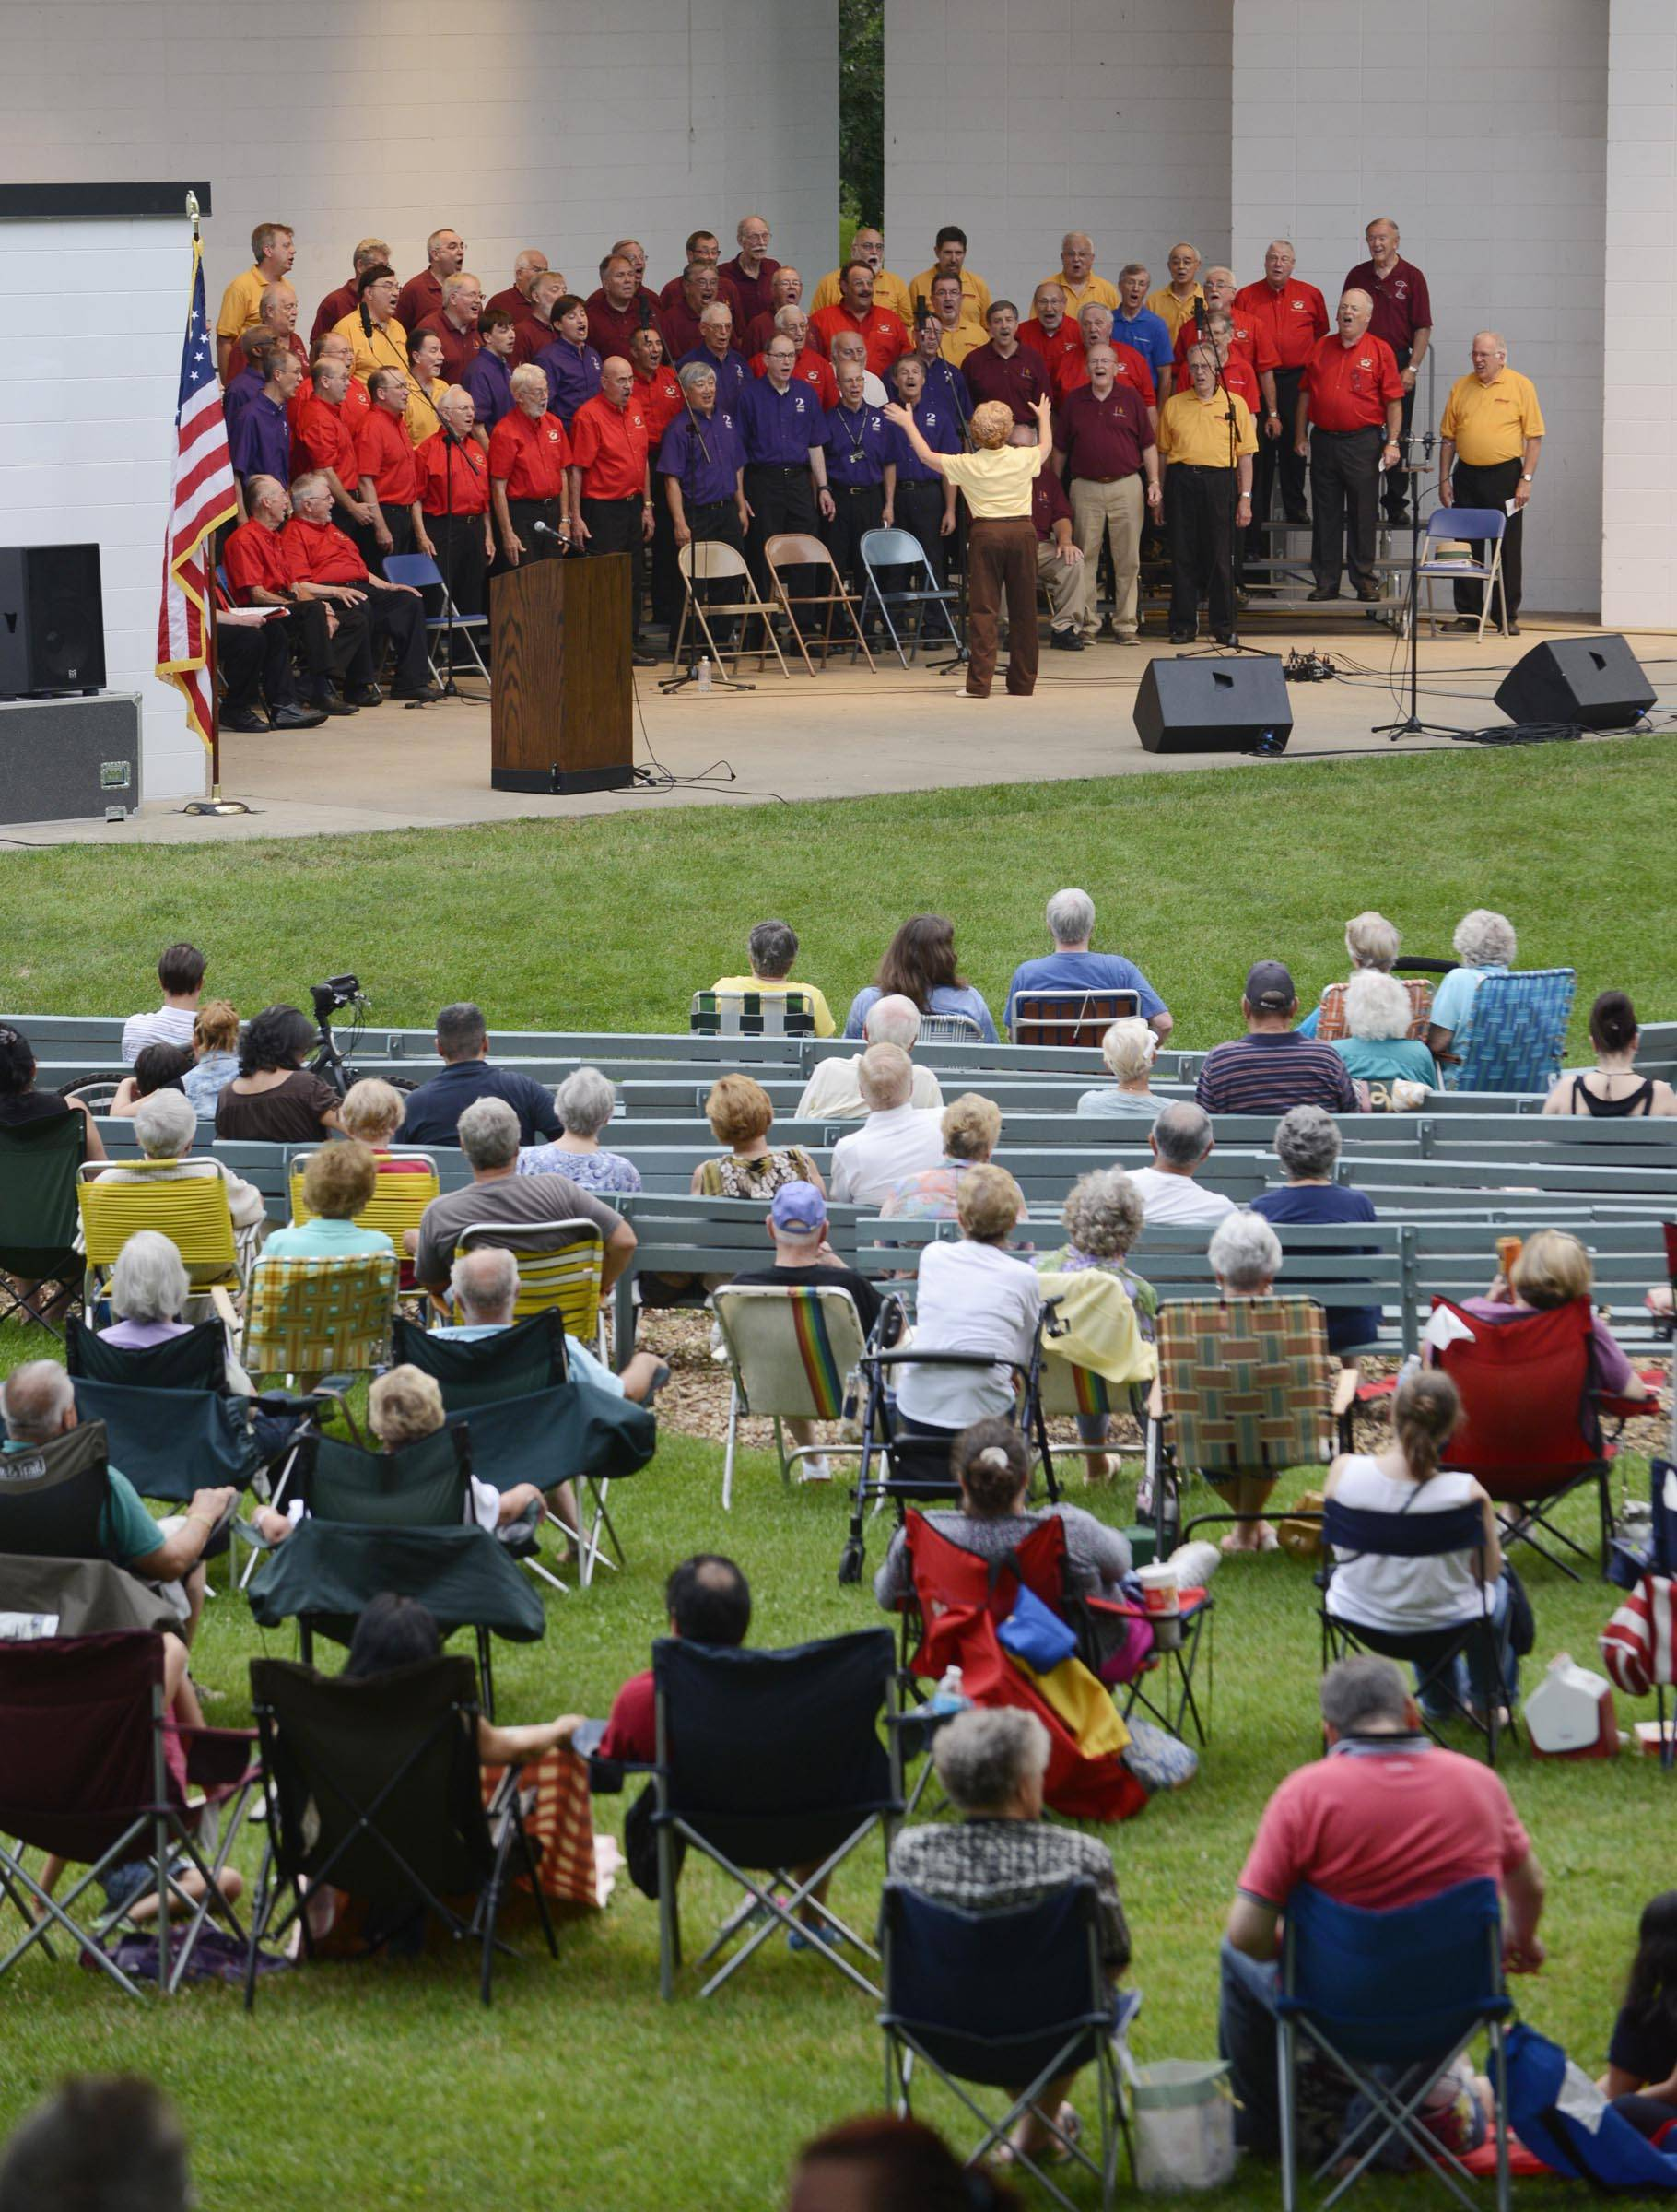 Northern Illinois Barbershop Chapters, a 100-man mass chorus, performs in the band shell at Wing Park Tuesday night as part of the Harmony Fest 2014.